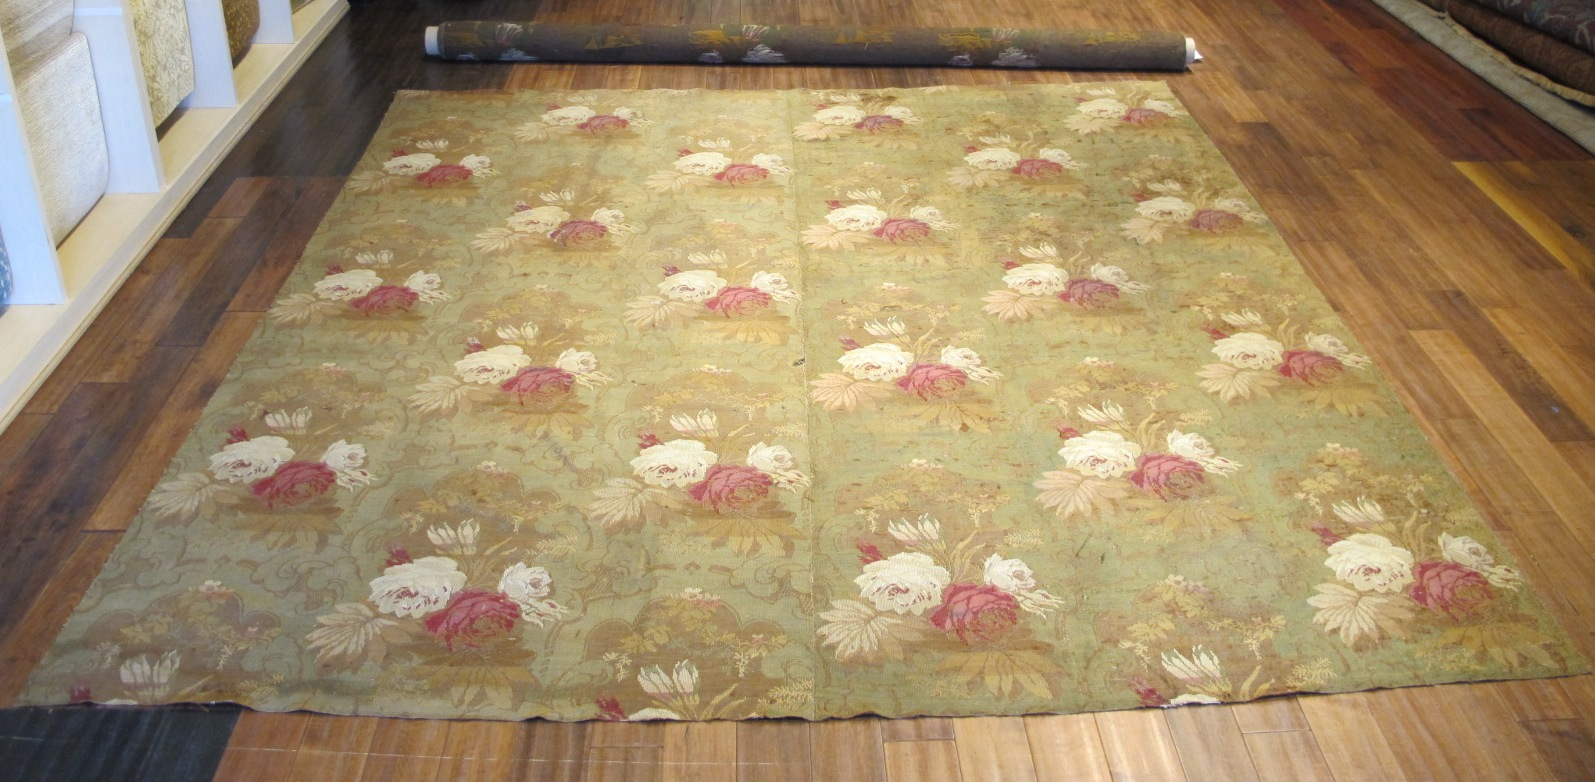 Jacquard Loom Rug | Europe | Antique, Early 1800s